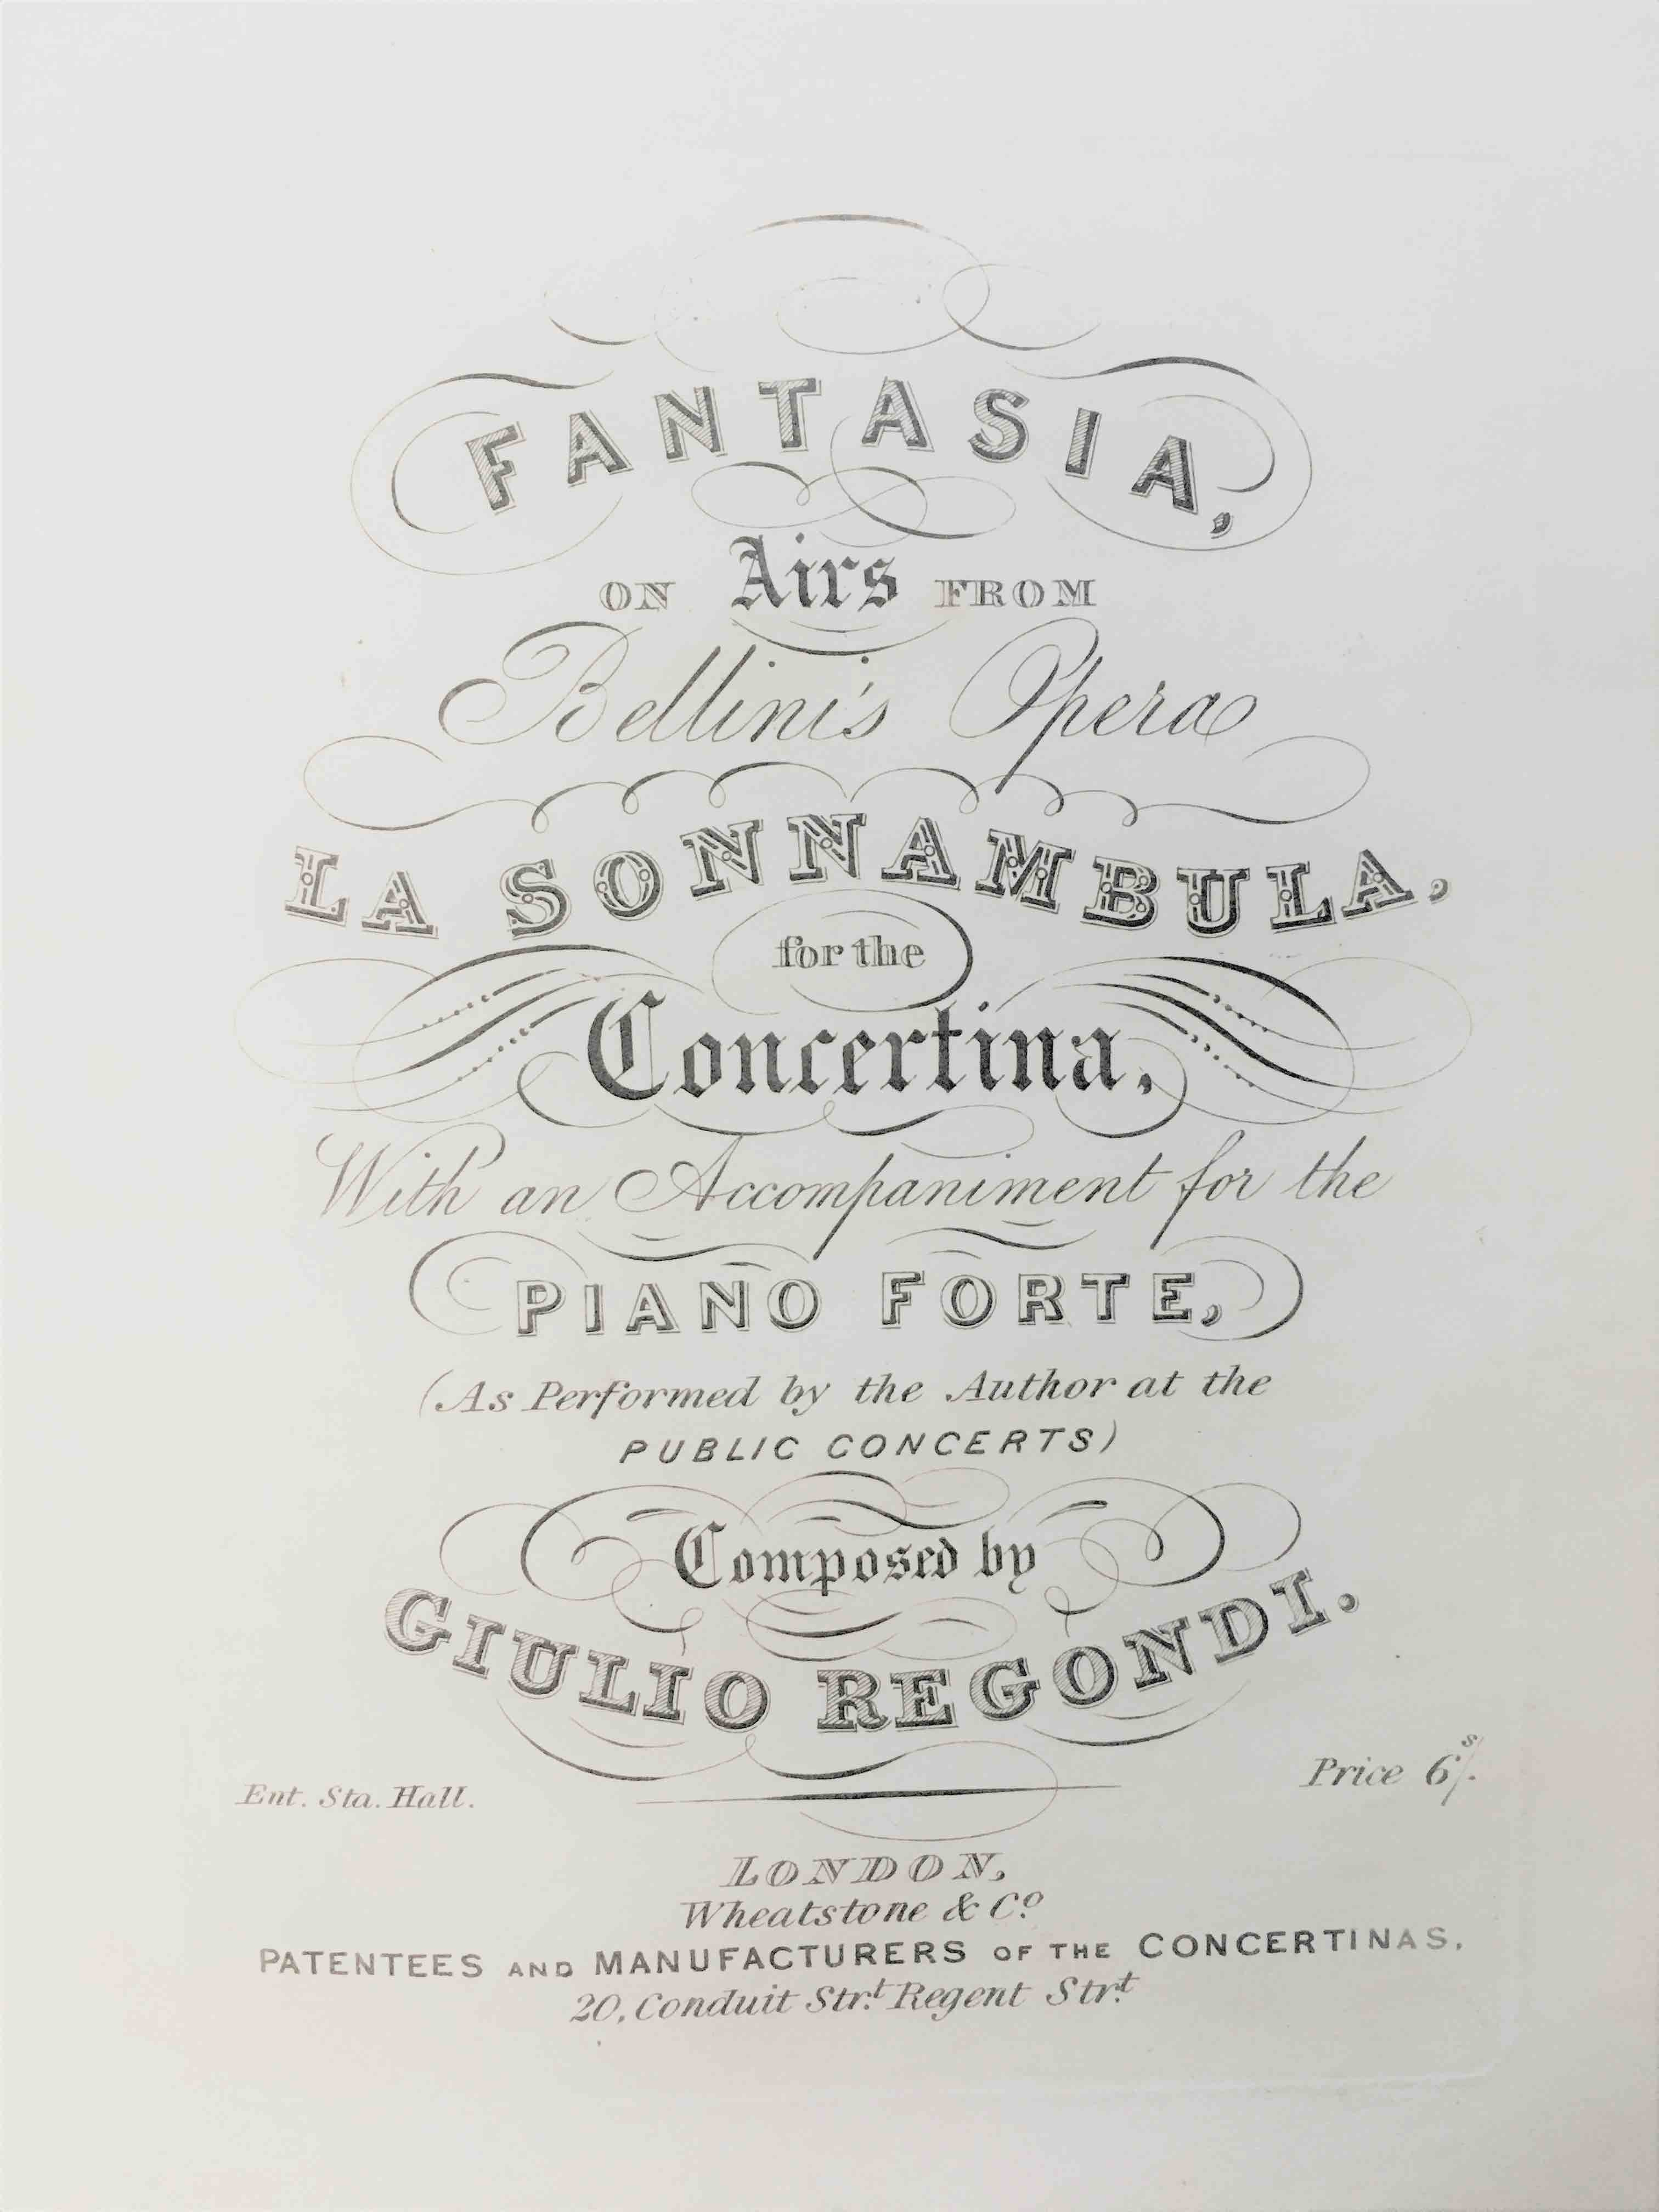 UniM Bail Music RB  XHP CAS.1 <br> Giulio Regondi, composer ; Vincenzo Bellini, composer <br> Fantasia on airs from Bellini's opera La Sonnambula<br> London , [ca 1855] <br> Bound volume of concertina music and a concertina method